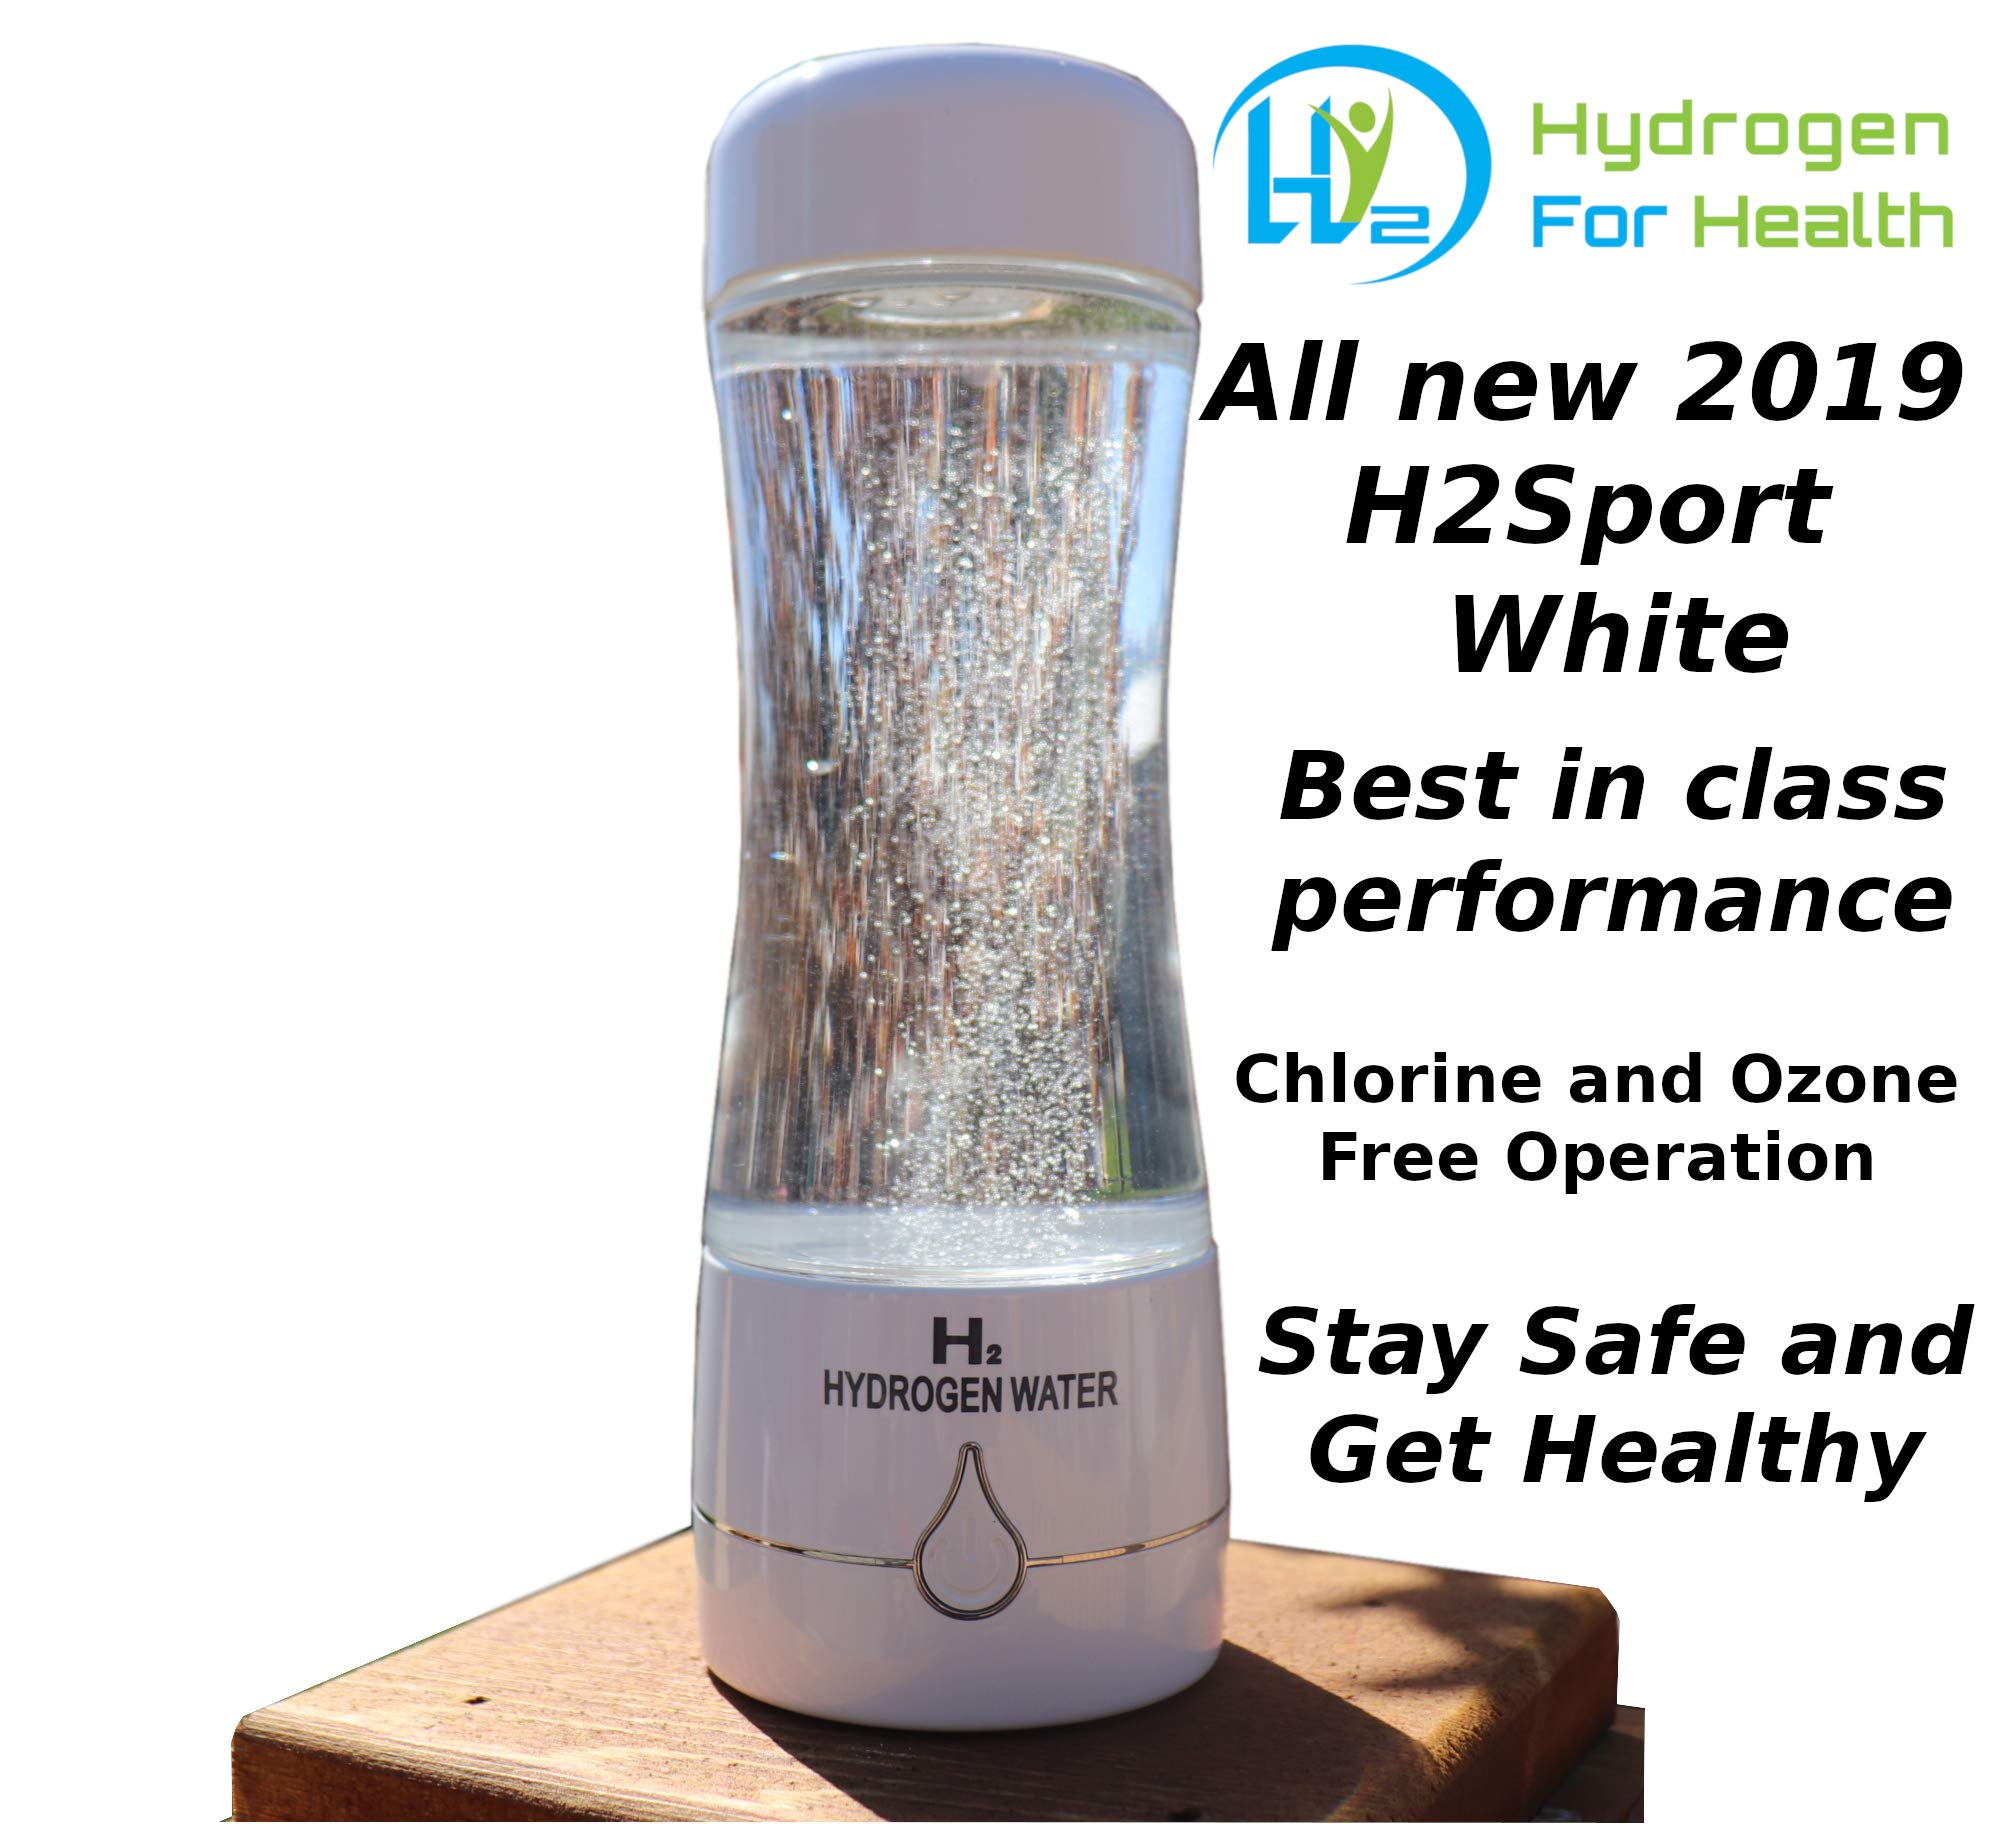 H2 Sport White Hydrogen Water Bottle Generator with PEM Dual Chamber Technology. New for 2019